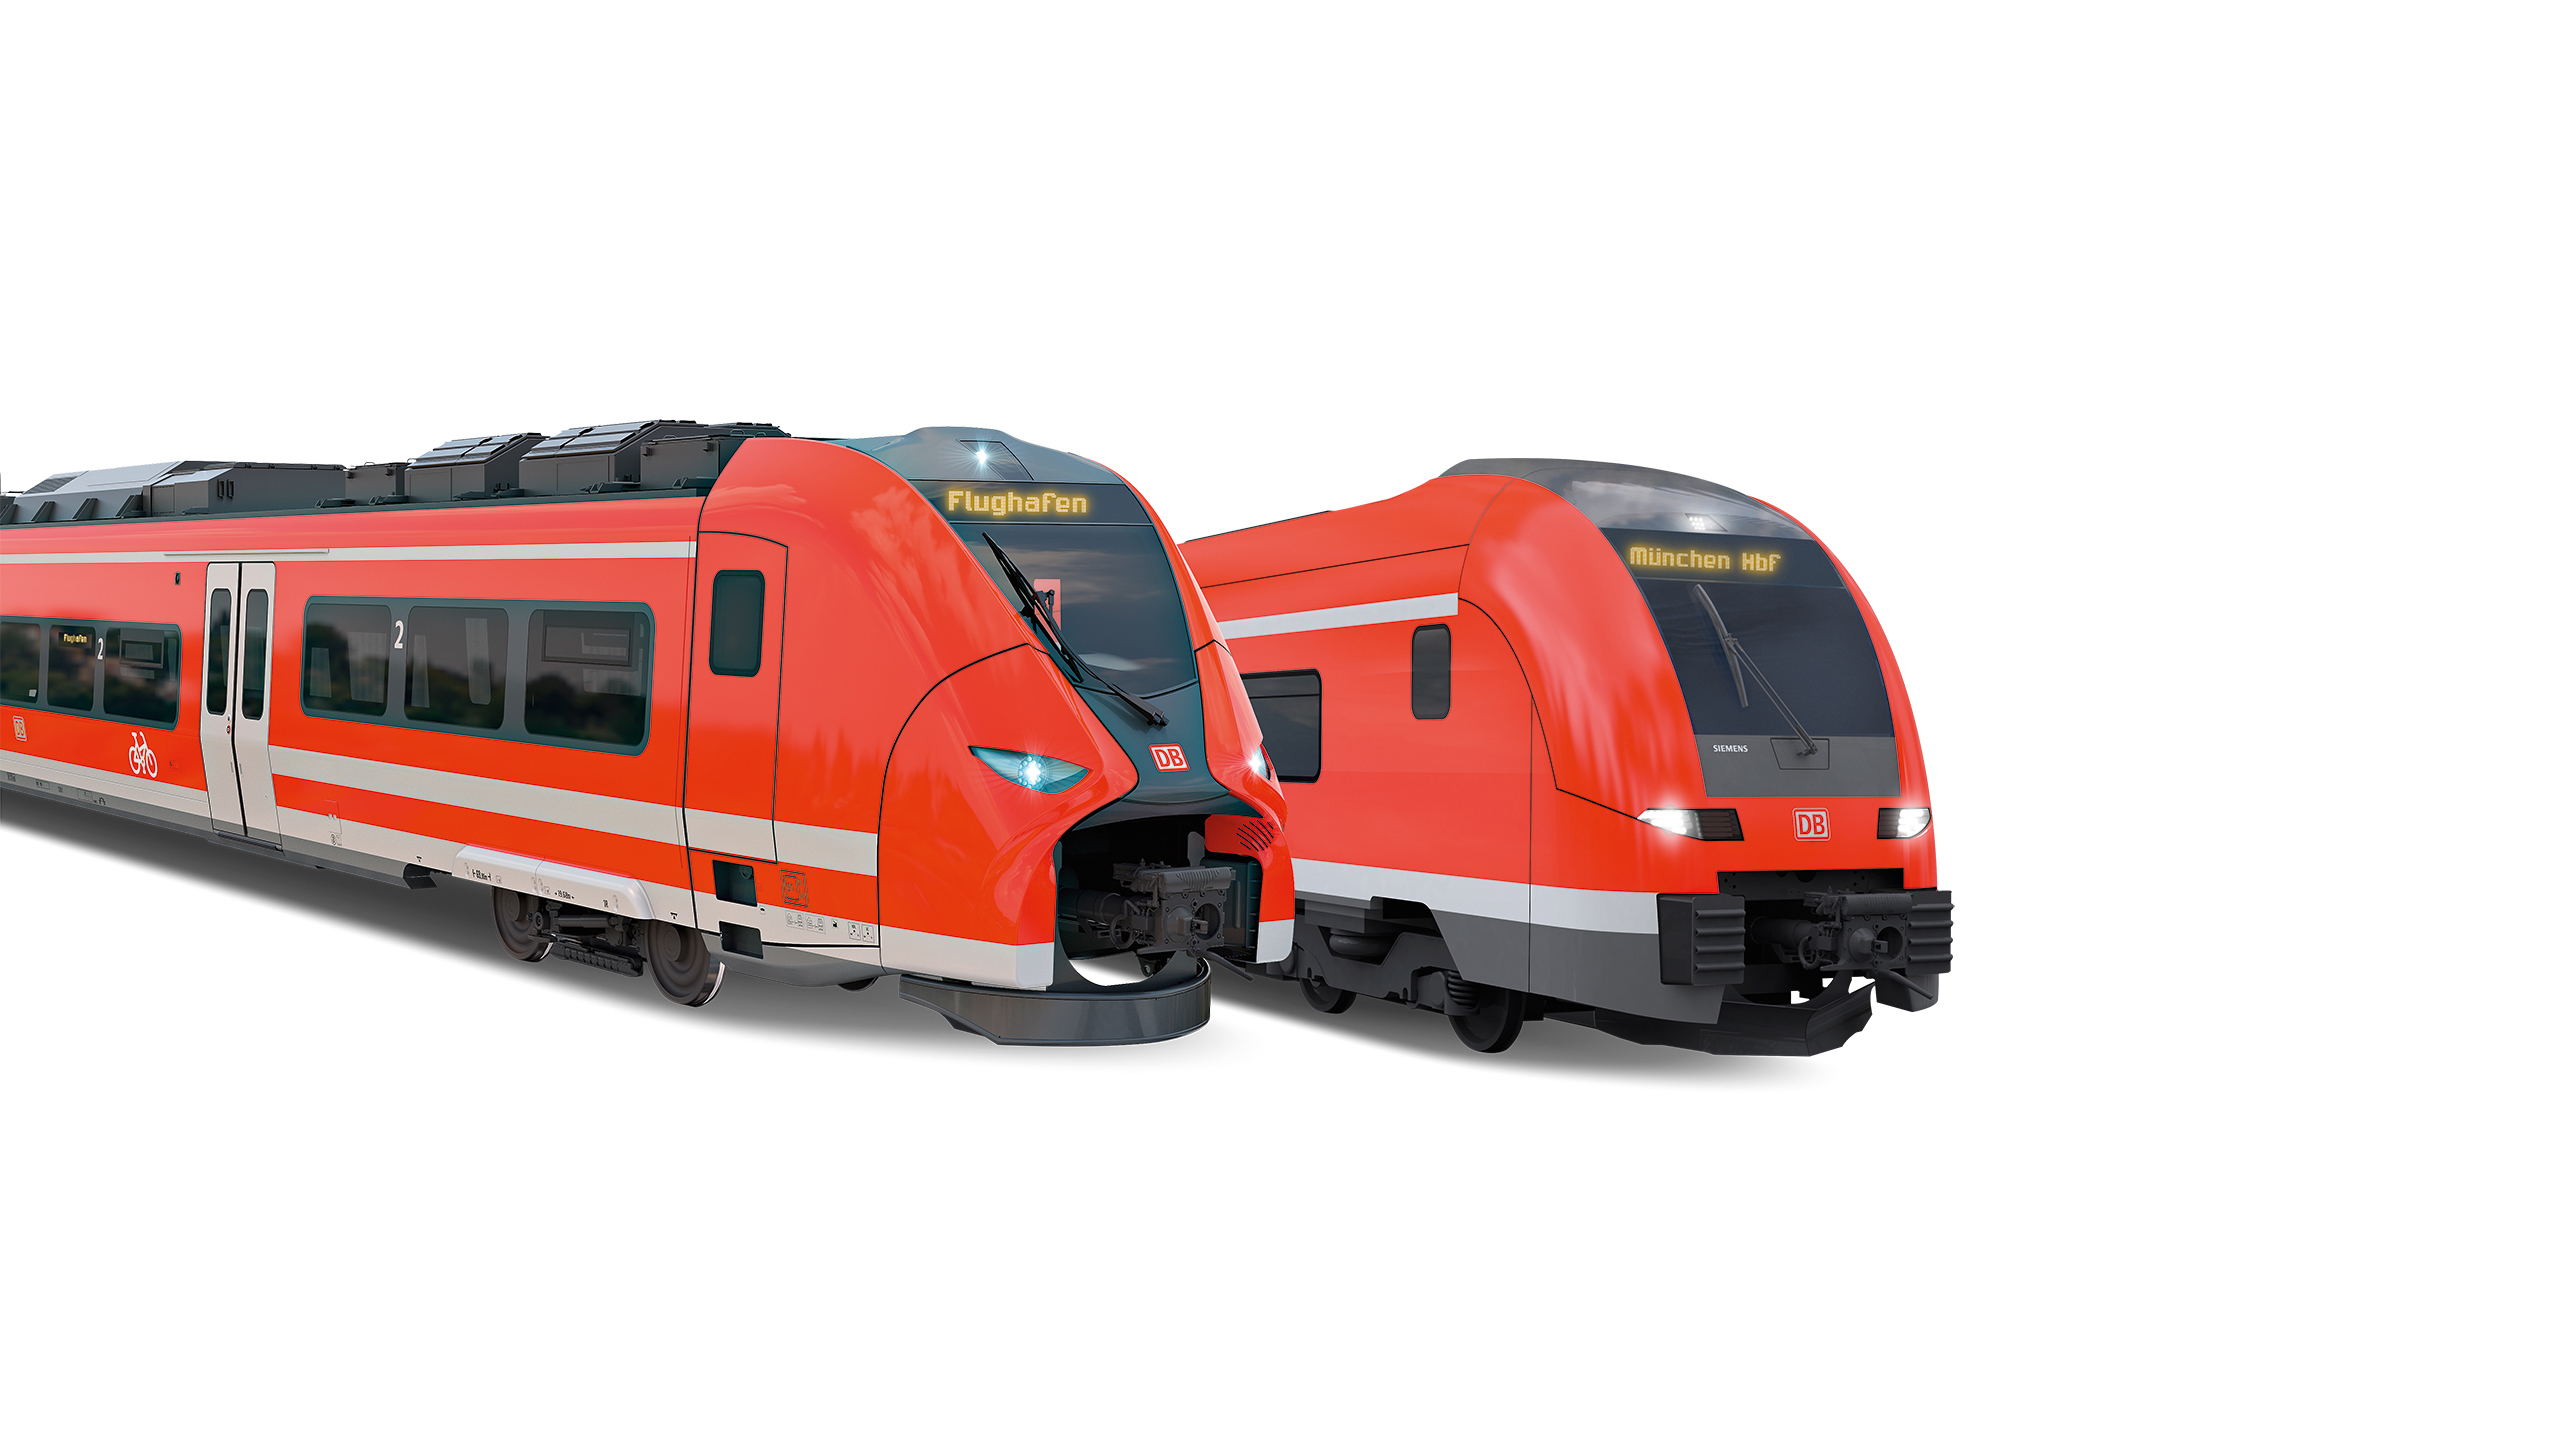 DB Regio Bayern orderos single-decker Mireo and double-decker Desiro HC trains from Siemens Mobility